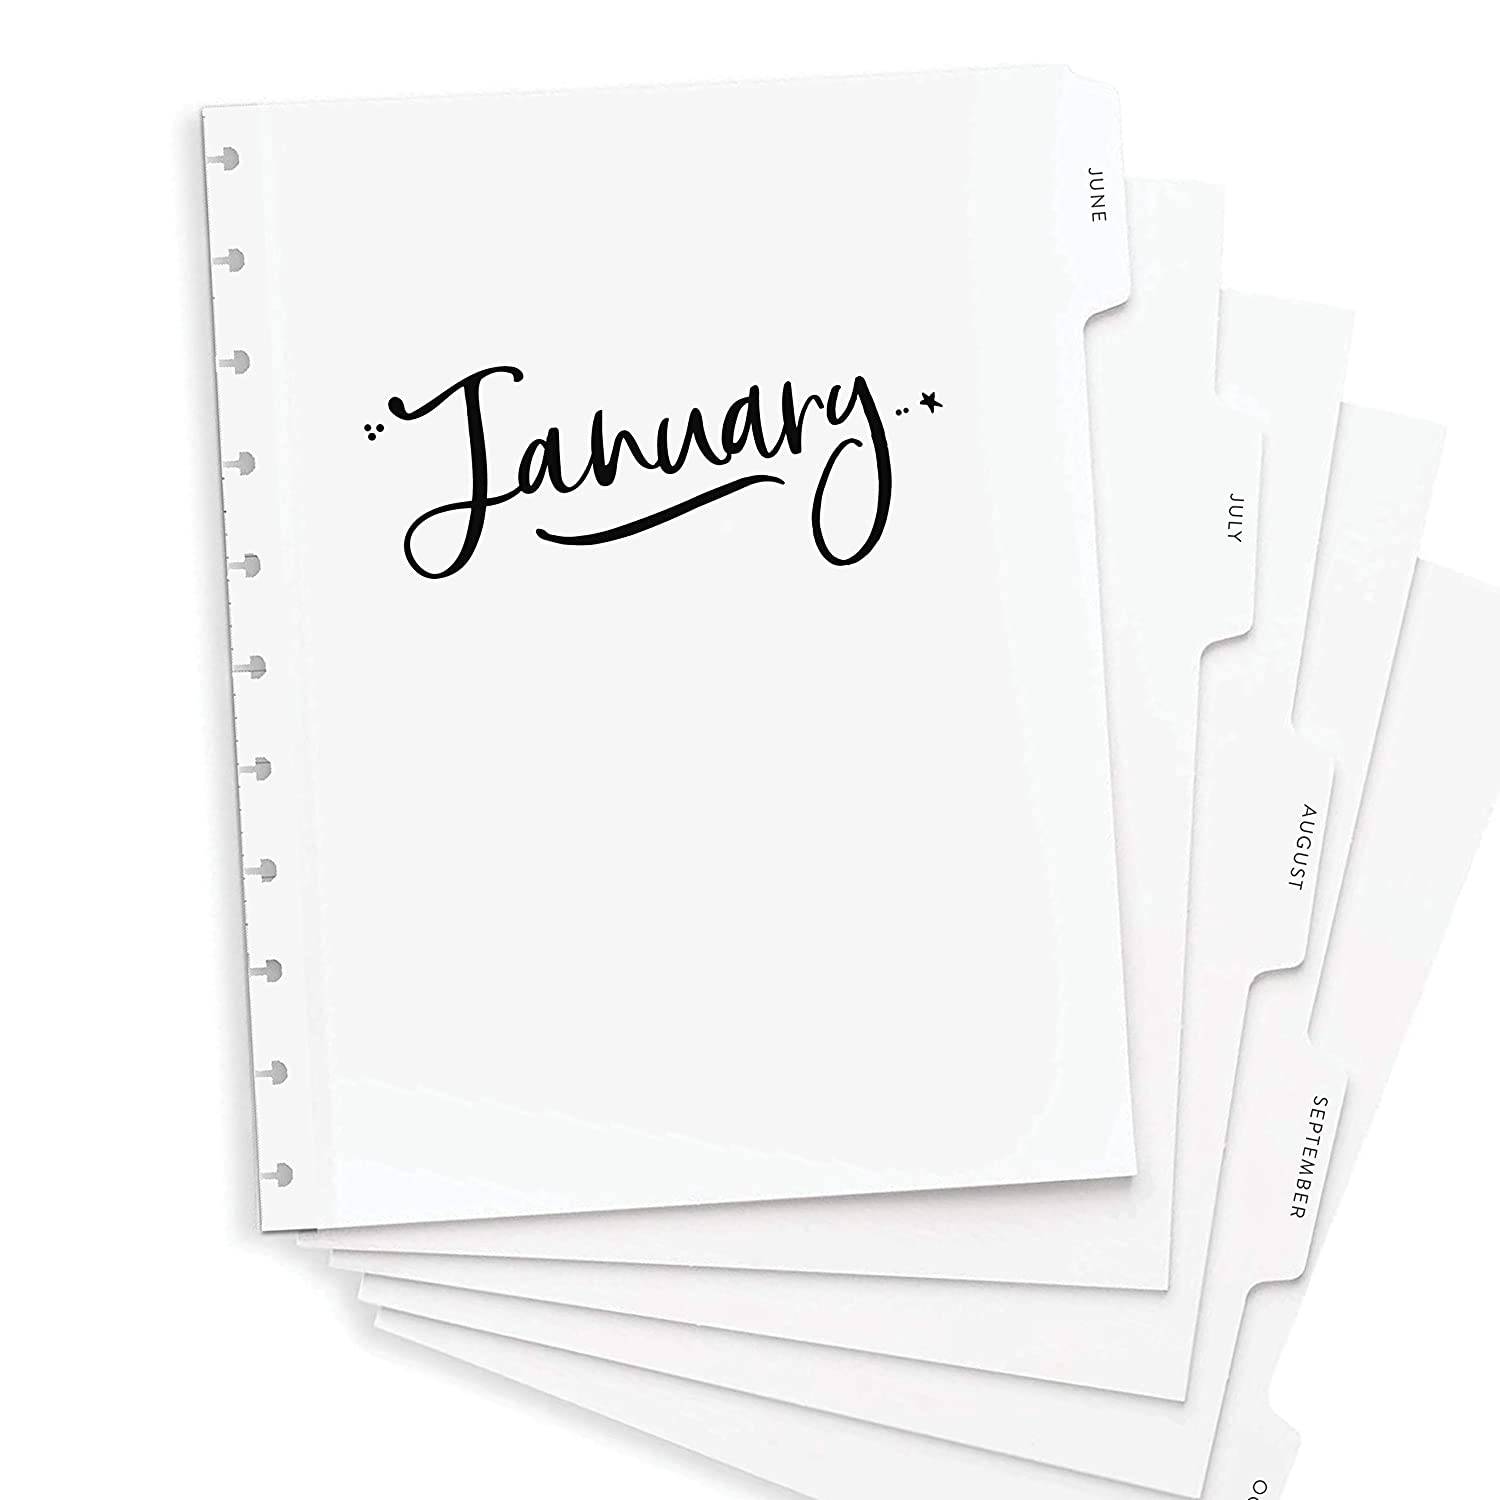 """BetterNote 2021 Monthly Calendar Tabbed Dividers for Discbound Planners, 11-Disc Notebook, Fits Circa Letter, Arc by Staples, TUL by Office Depot, Letter Size 8.5""""x11"""" Whimsy (Planner Not Included)"""